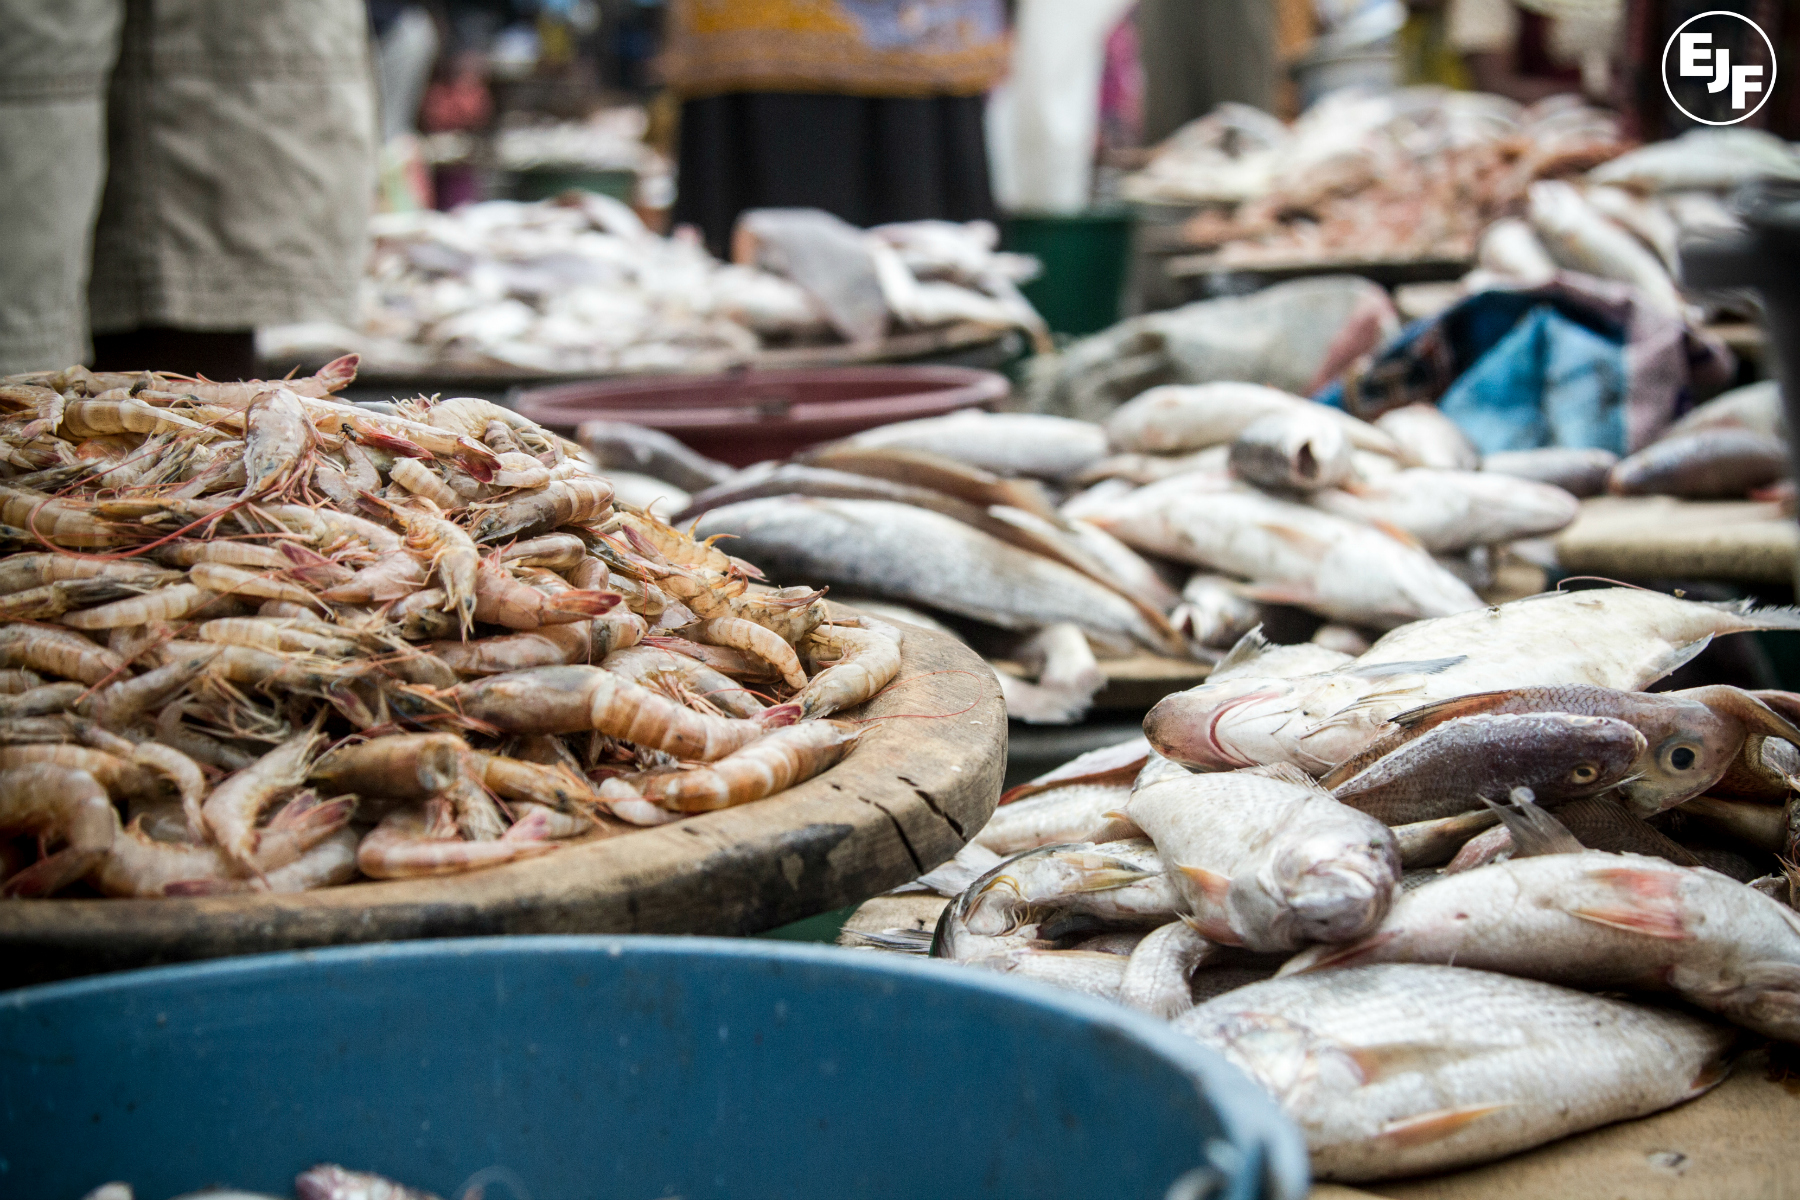 Leading businesses, NGOs and experts identify solutions to secure global seafood supplies